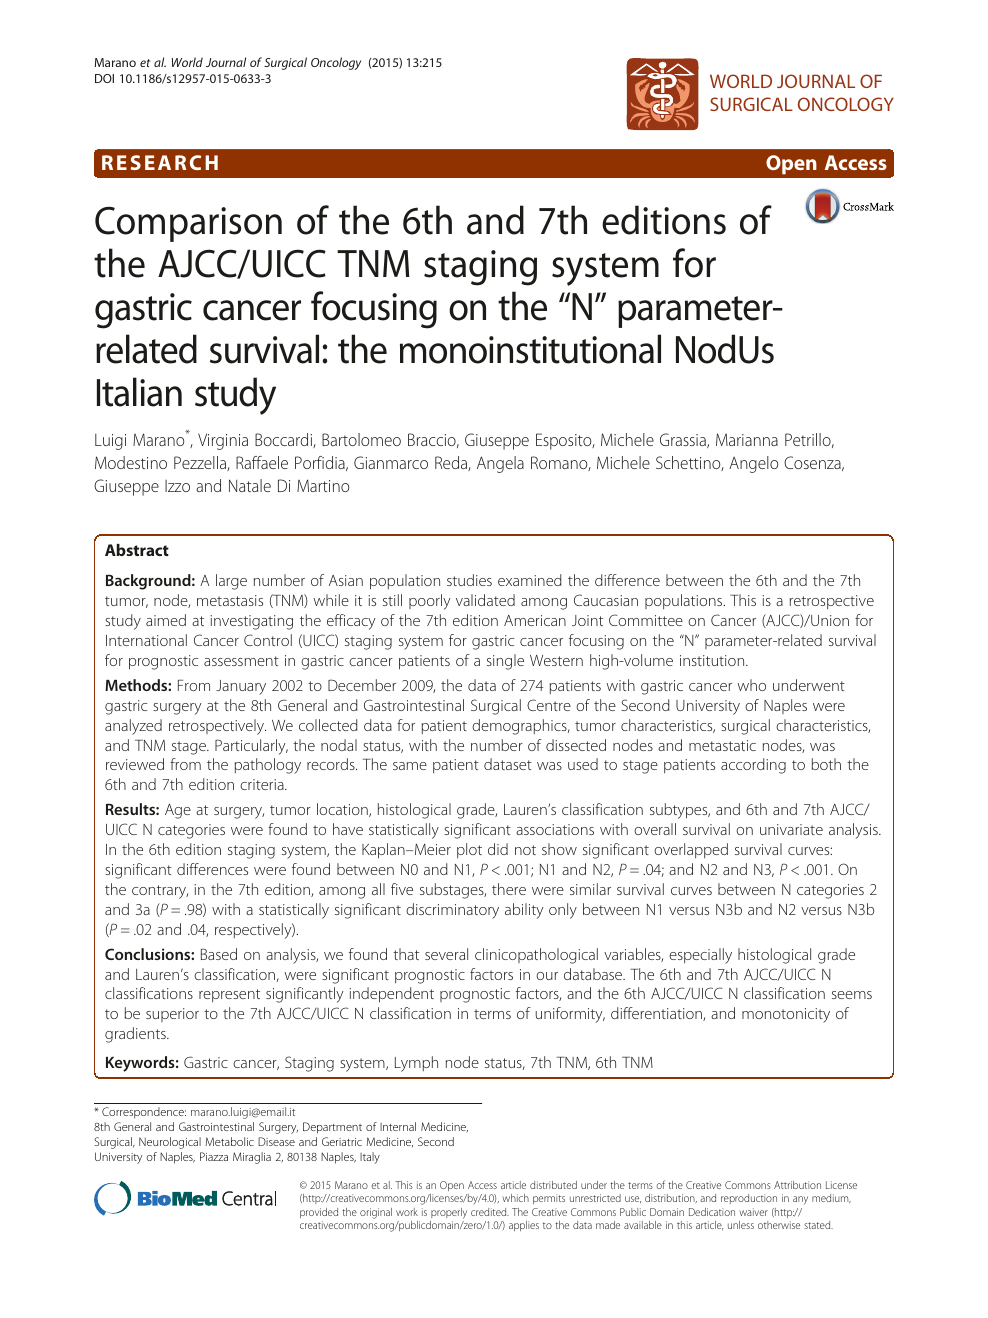 Comparison Of The 6th And 7th Editions Of The Ajcc Uicc Tnm Staging System For Gastric Cancer Focusing On The N Parameter Related Survival The Monoinstitutional Nodus Italian Study Topic Of Research Paper